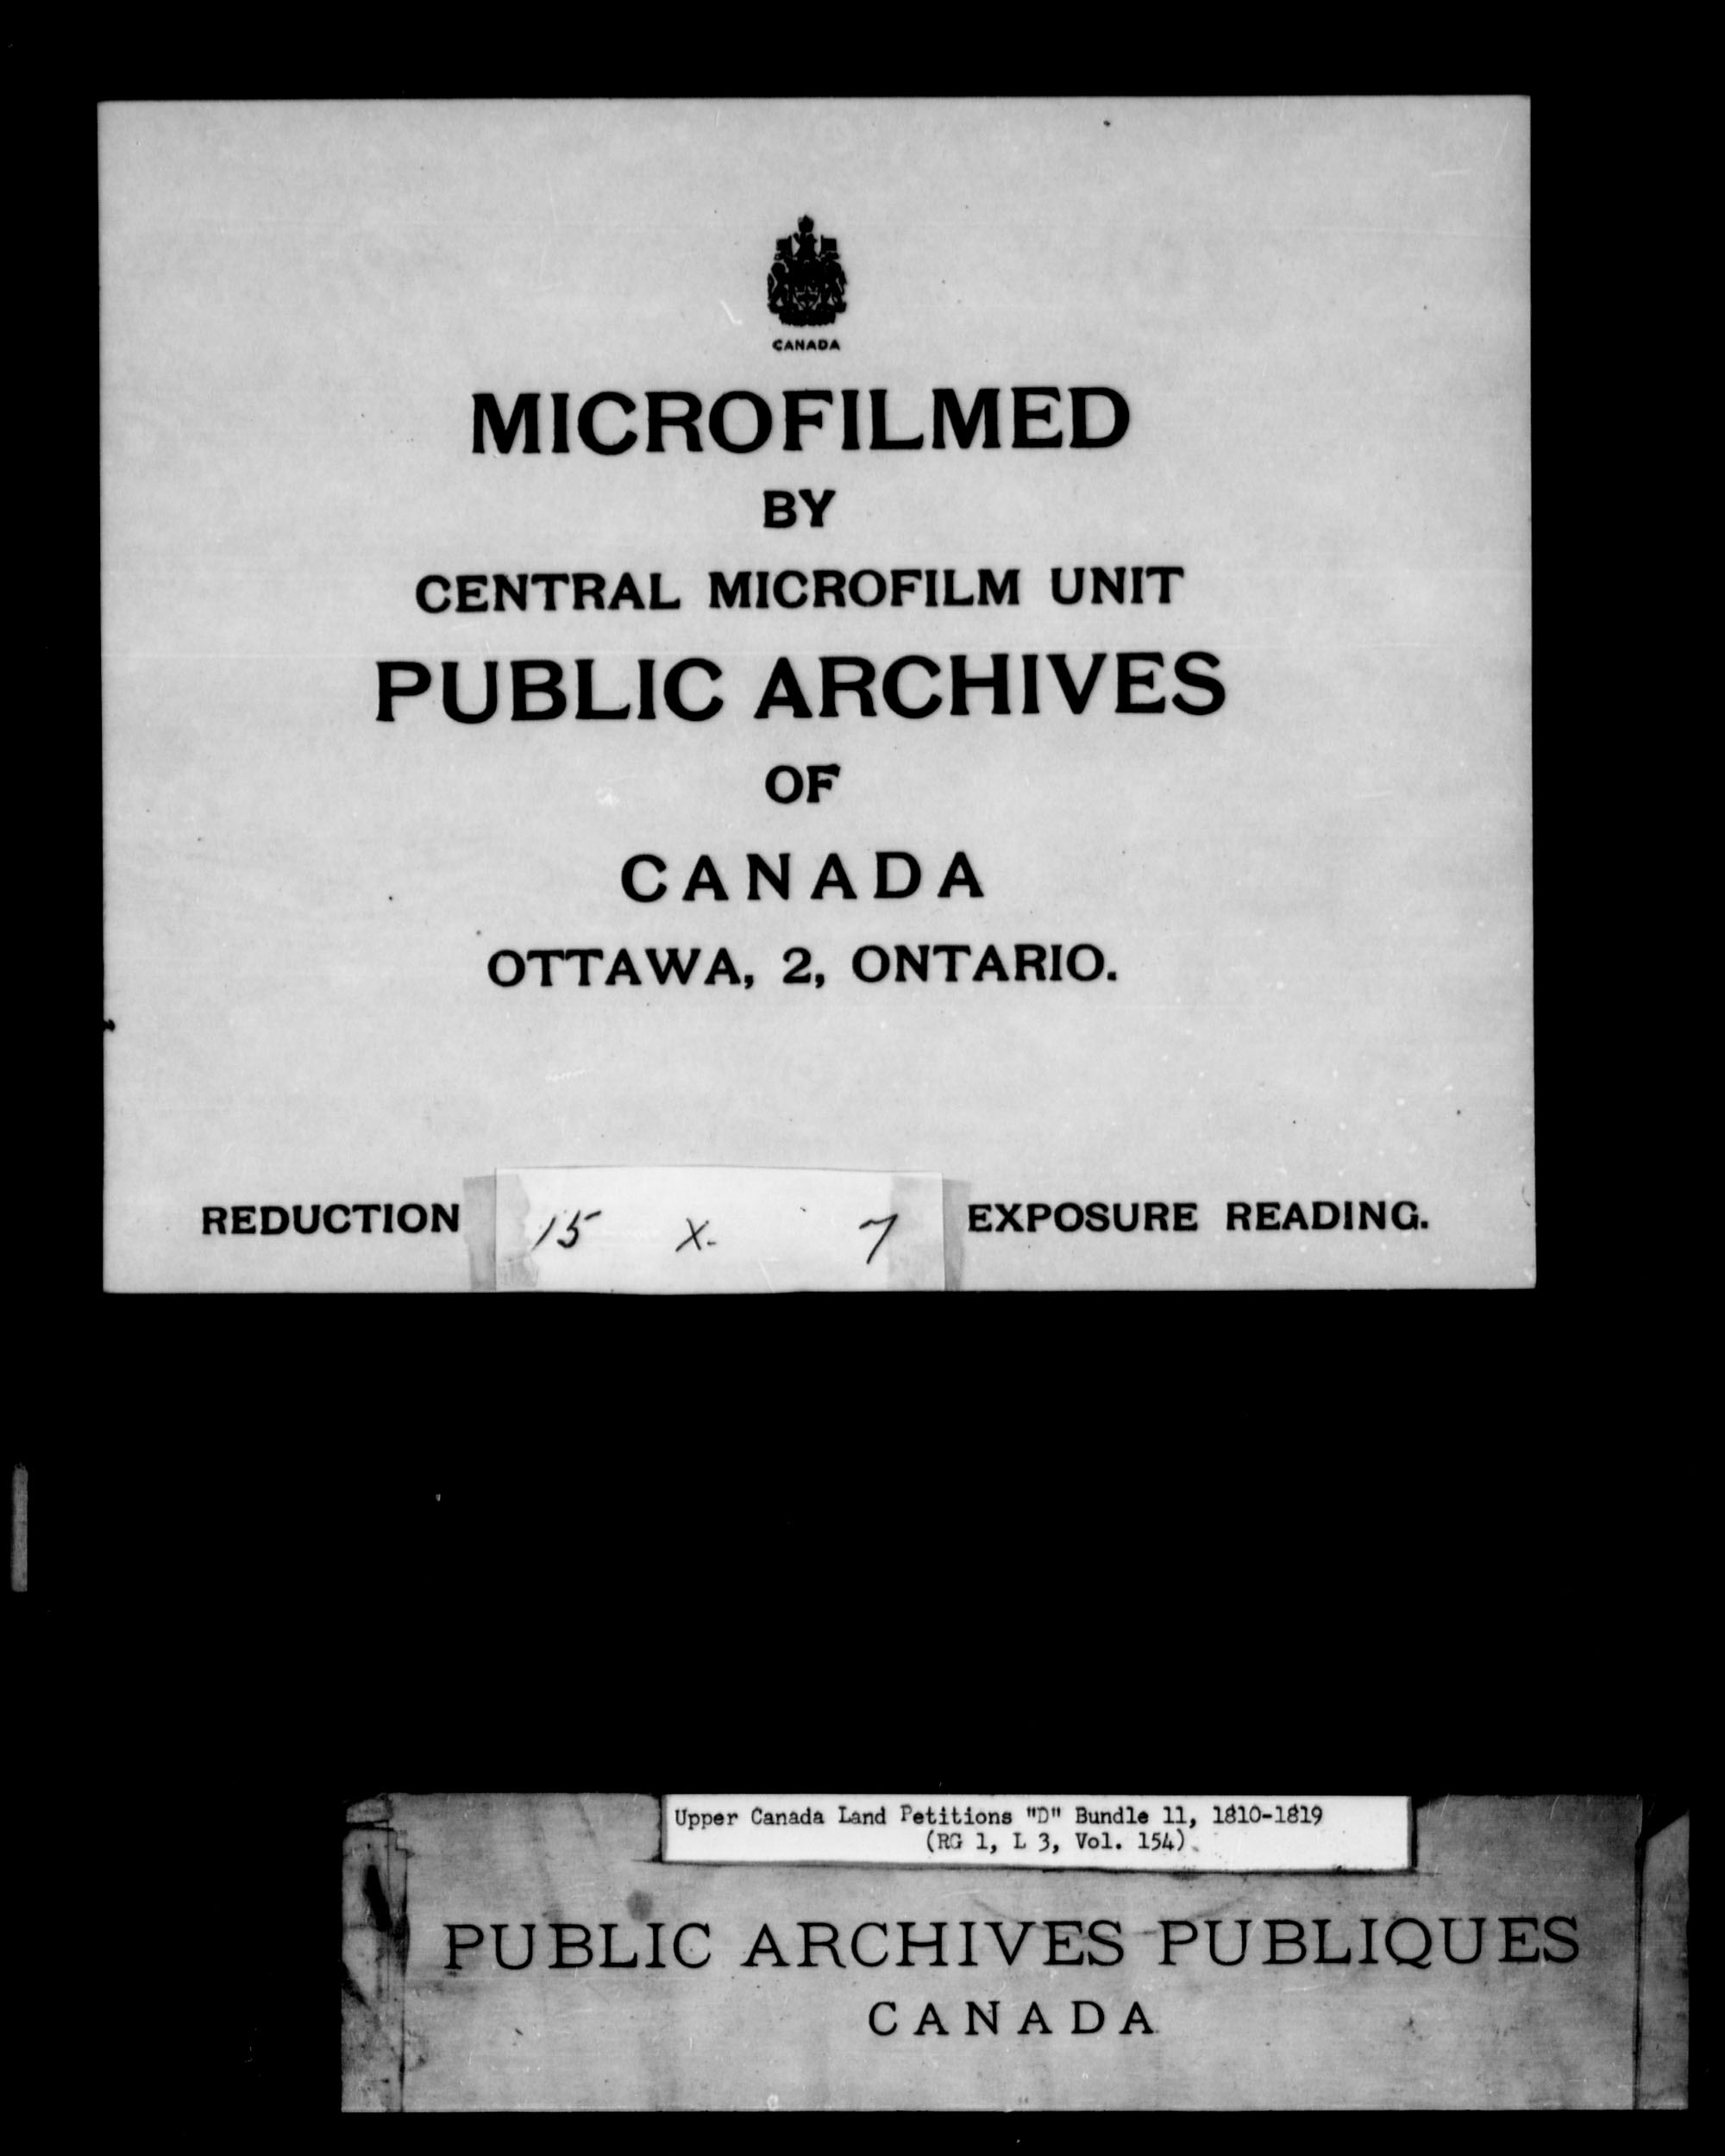 Title: Upper Canada Land Petitions (1763-1865) - Mikan Number: 205131 - Microform: c-1745